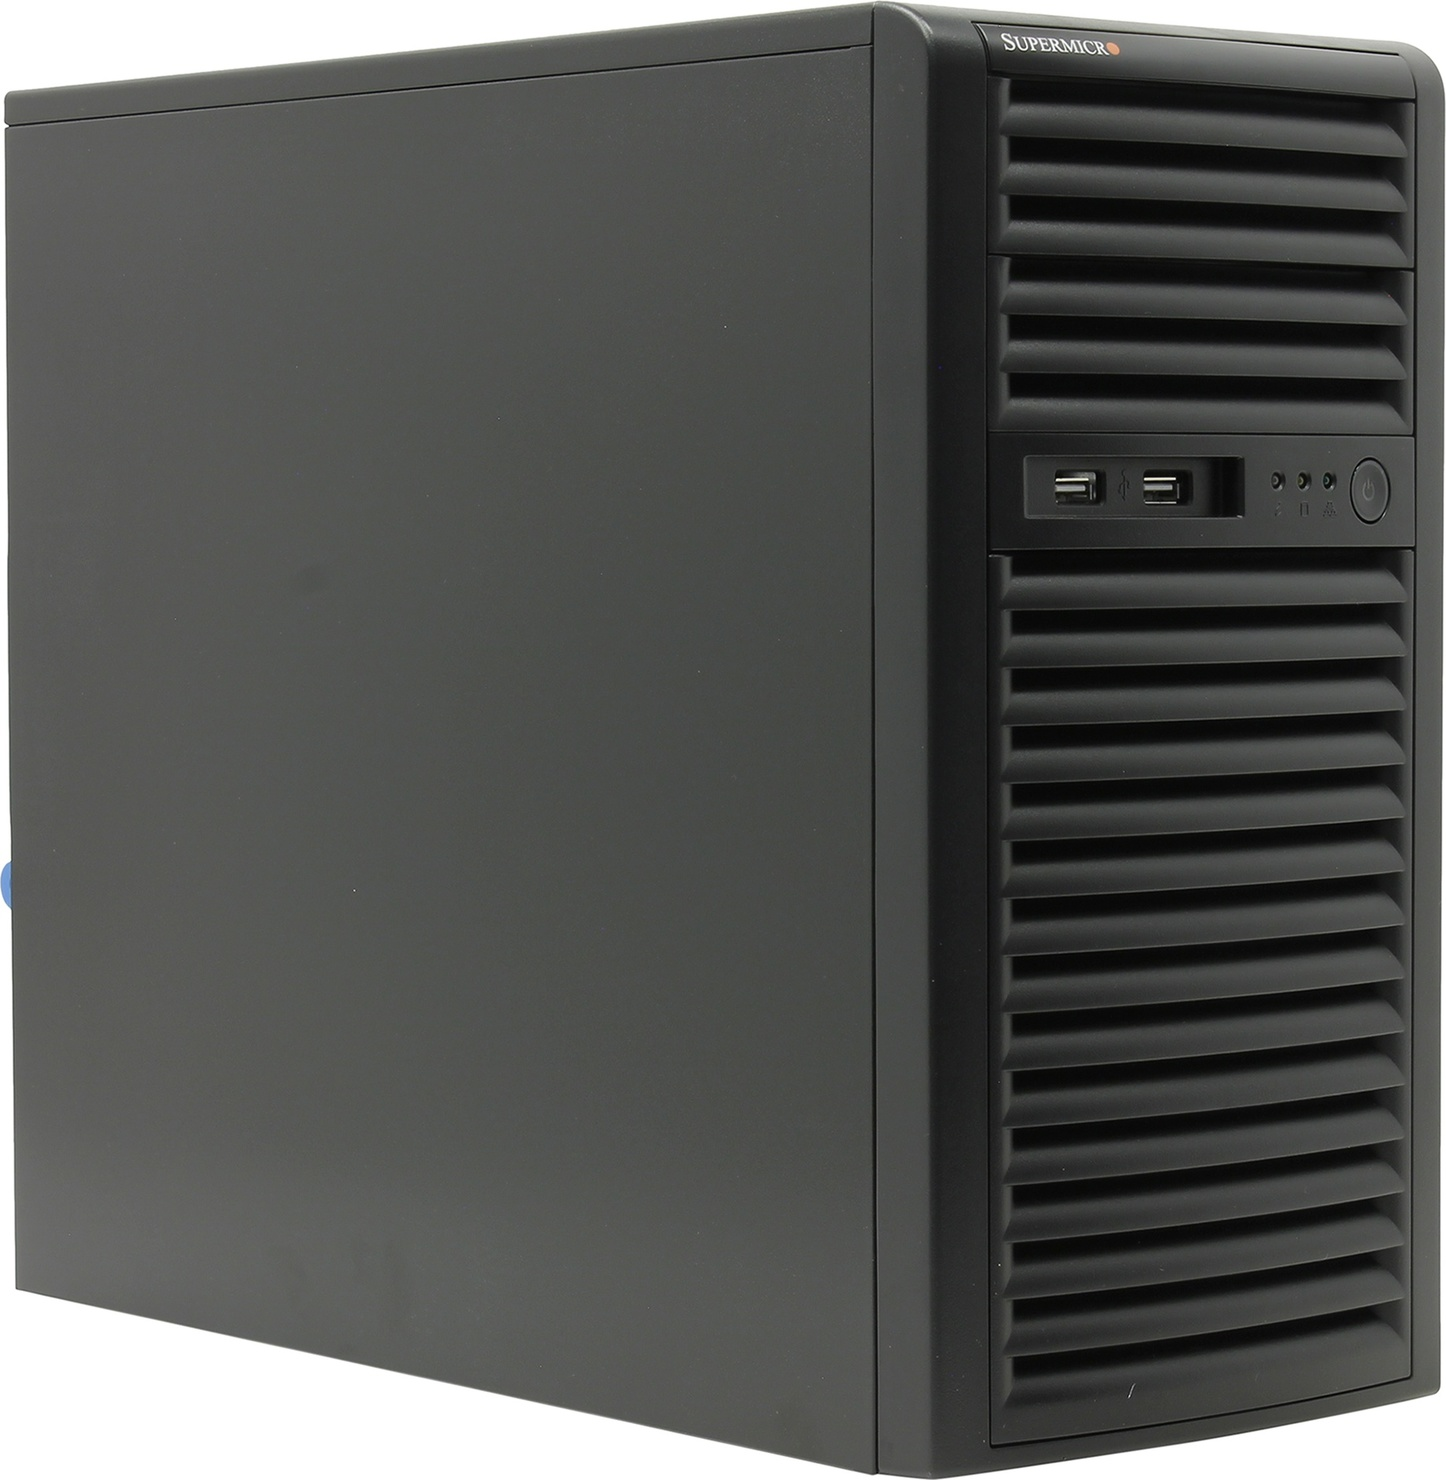 Сервер SERVER Tower 0110 0662613/1xE3-1220V6/1x8gb/2x1tb/1x300w сервер ербаева